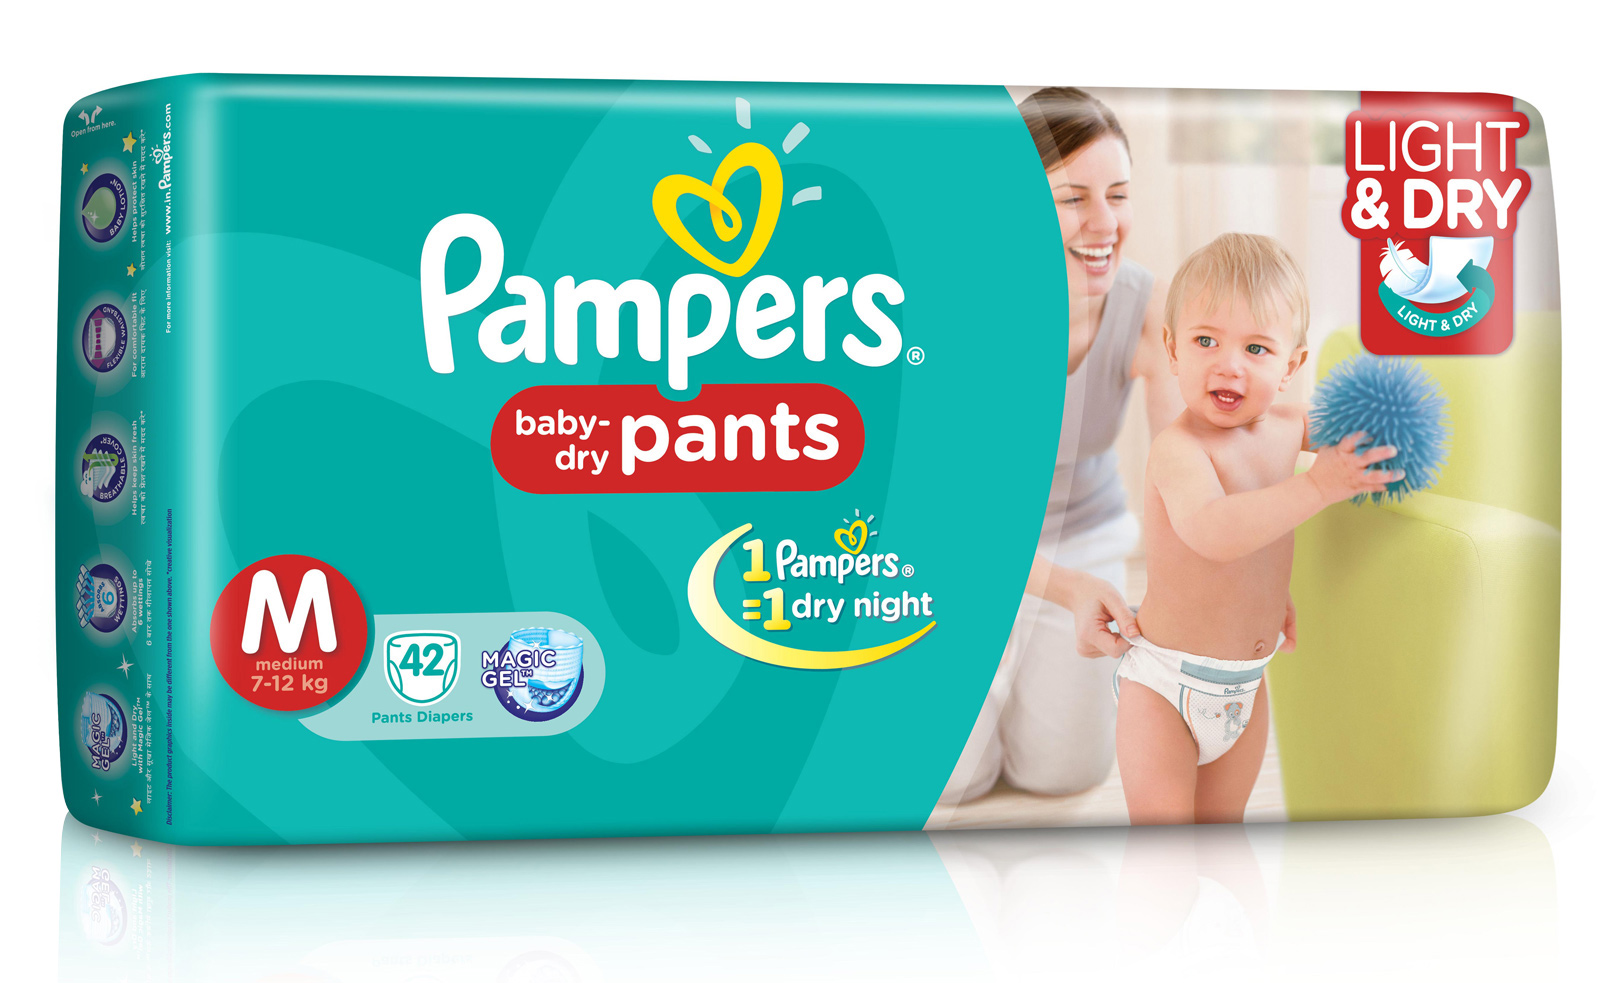 9b4d5aa9792 Pampers Pant Style Diapers Light And Dry Medium 42 Pieces Online ...